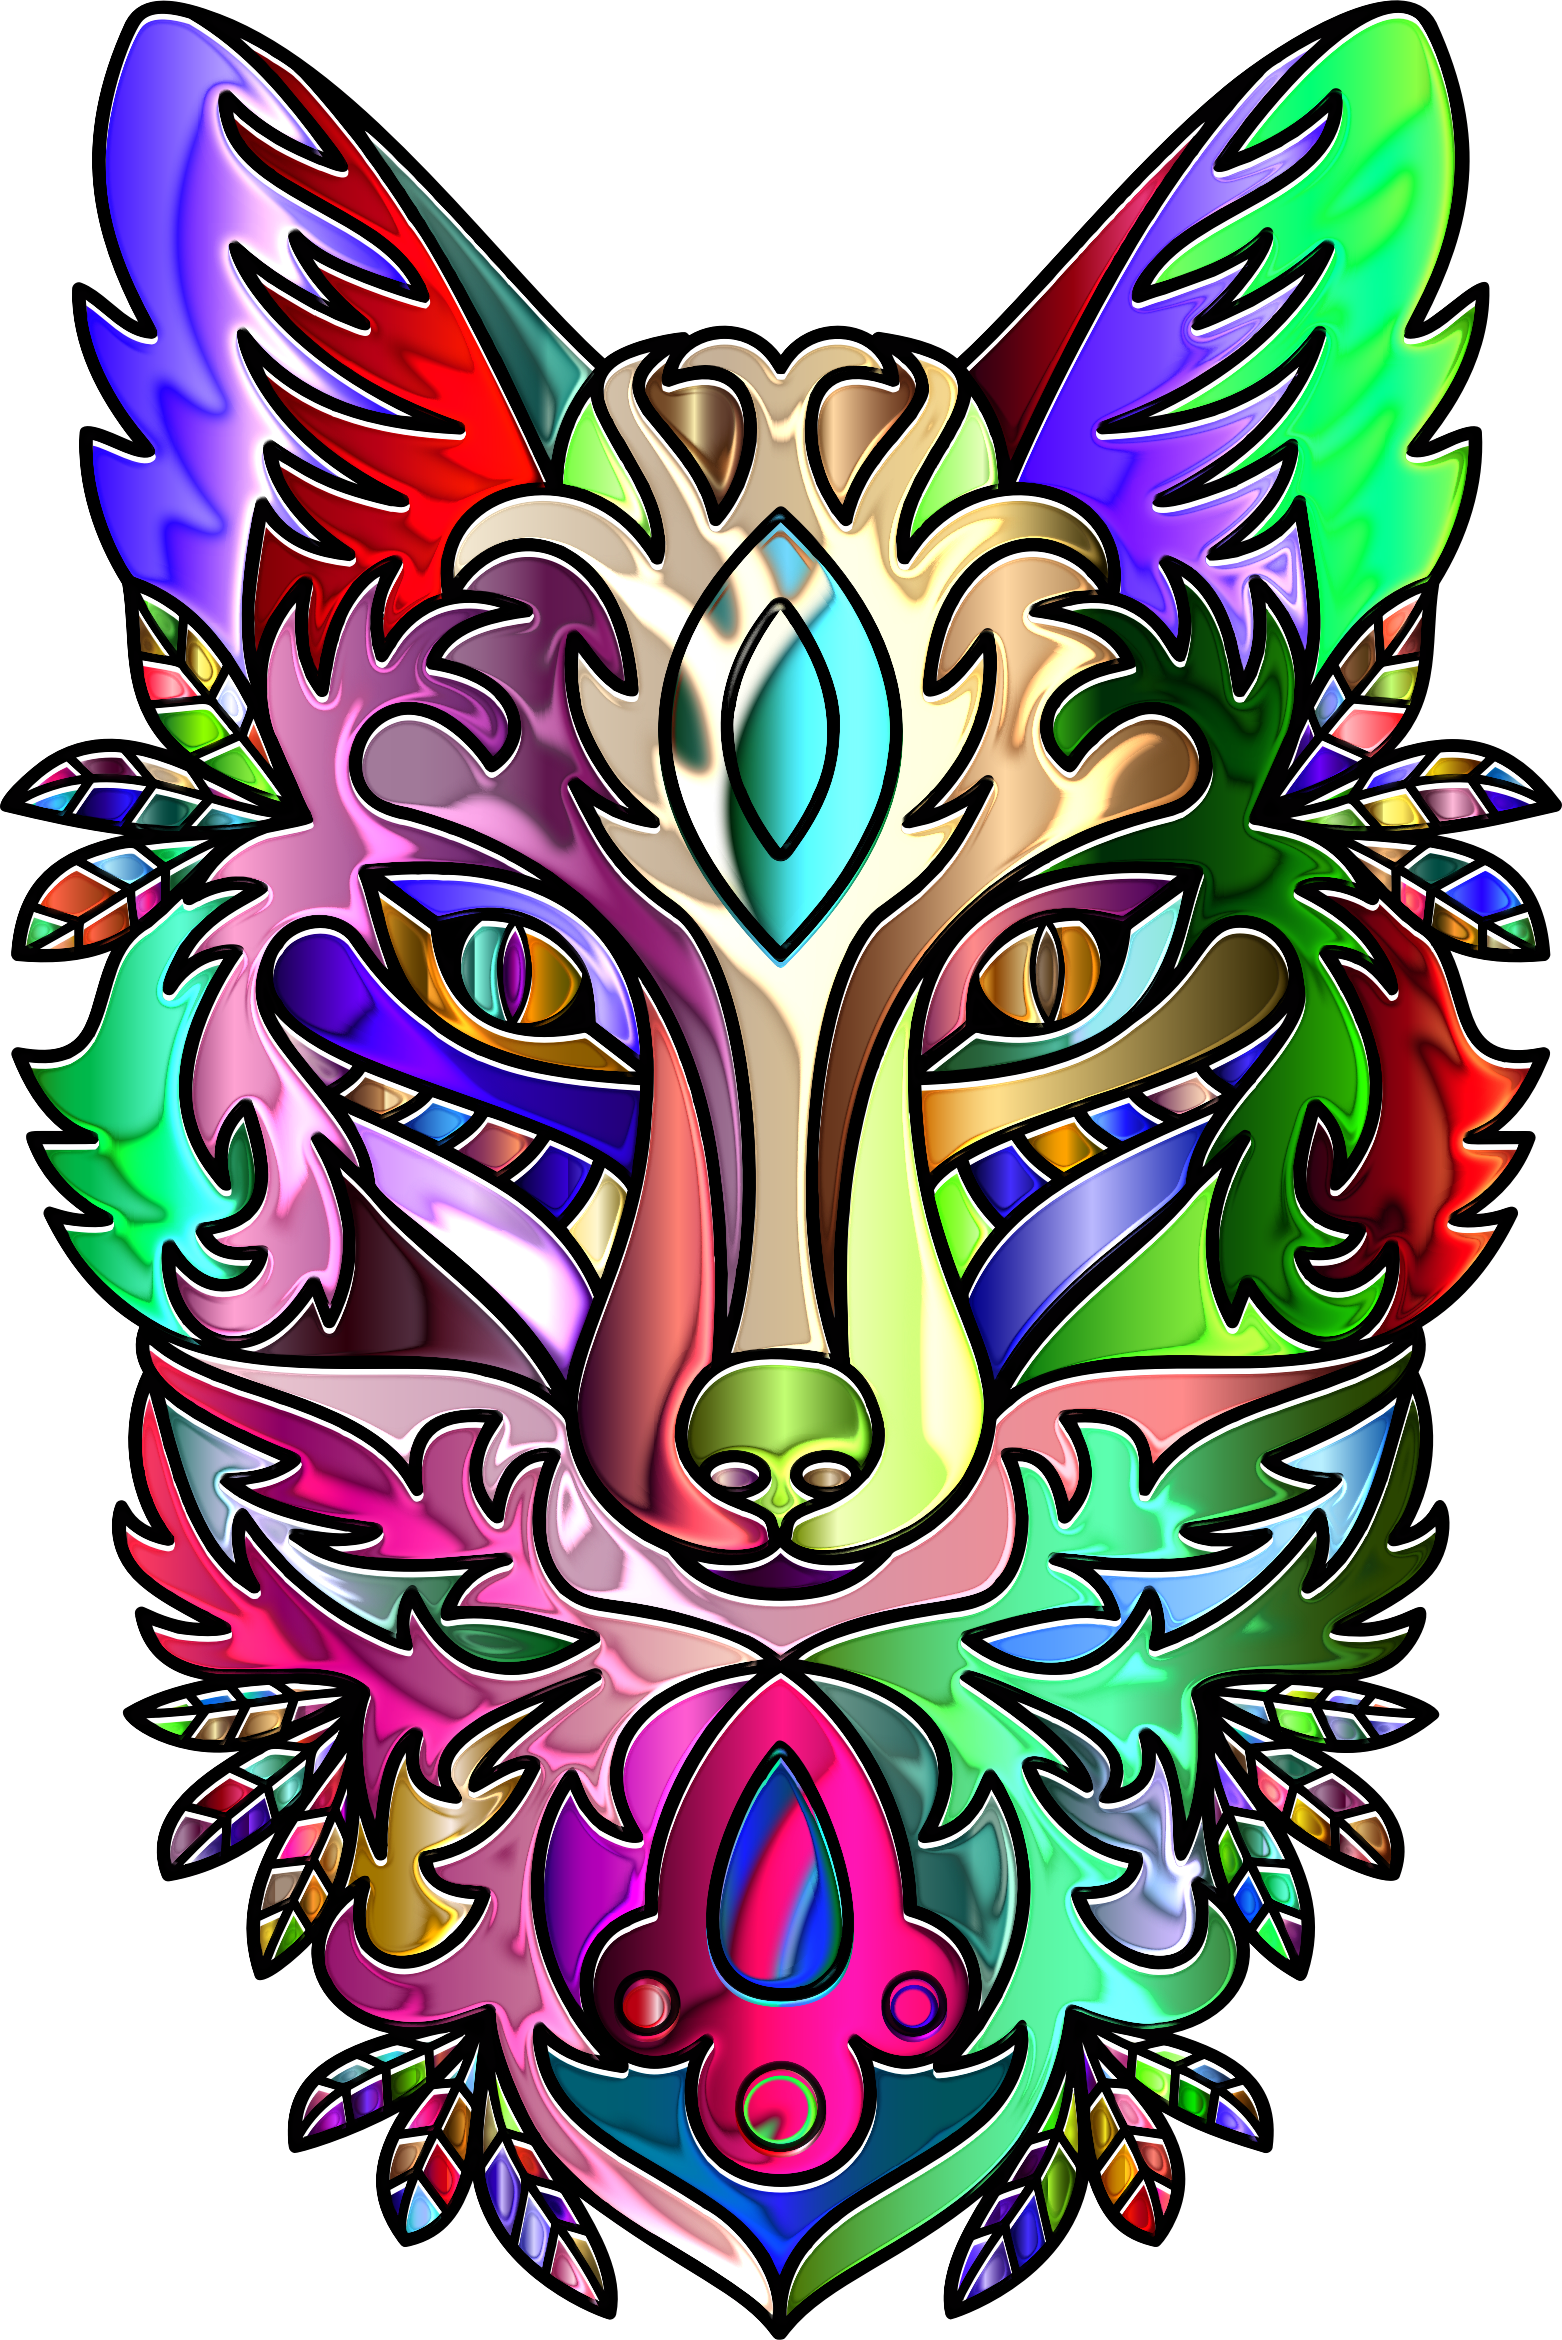 Chromatic Ornamental Fox Line Art Enhanced by GDJ